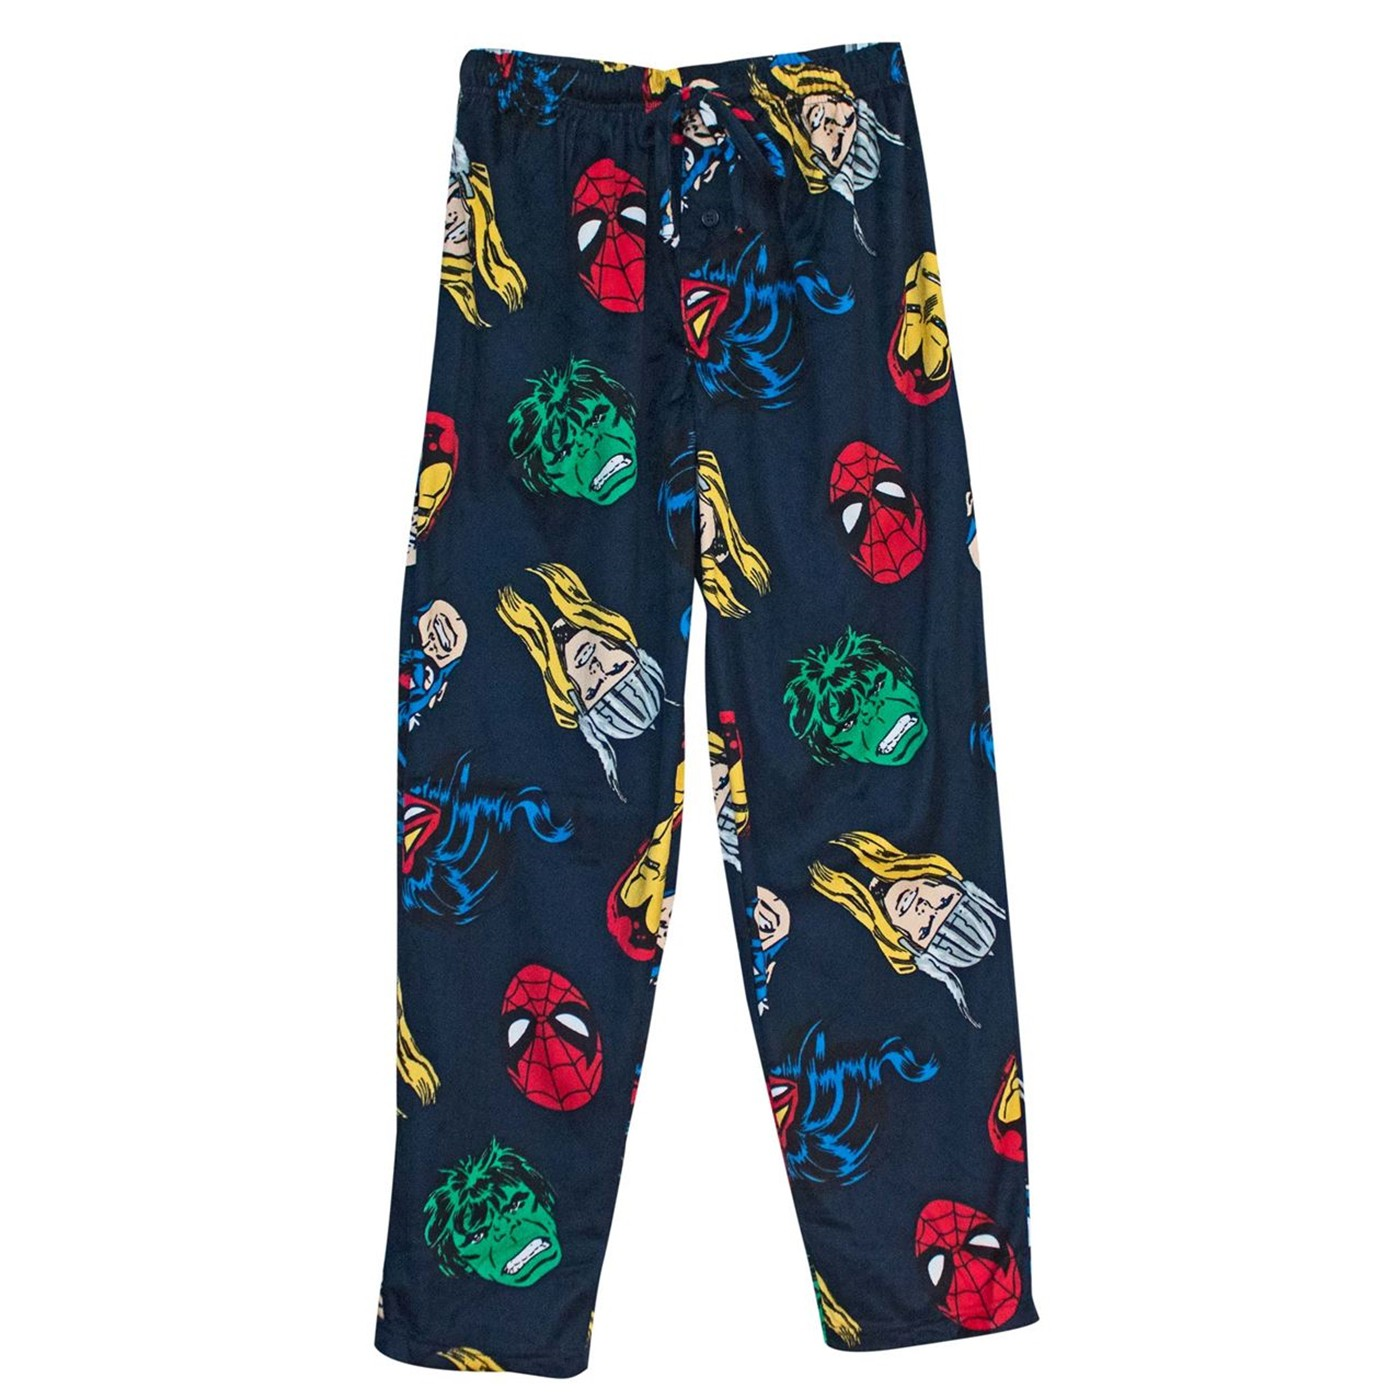 Avengers Classic Heads Up Men's Fleece Pajama Pants